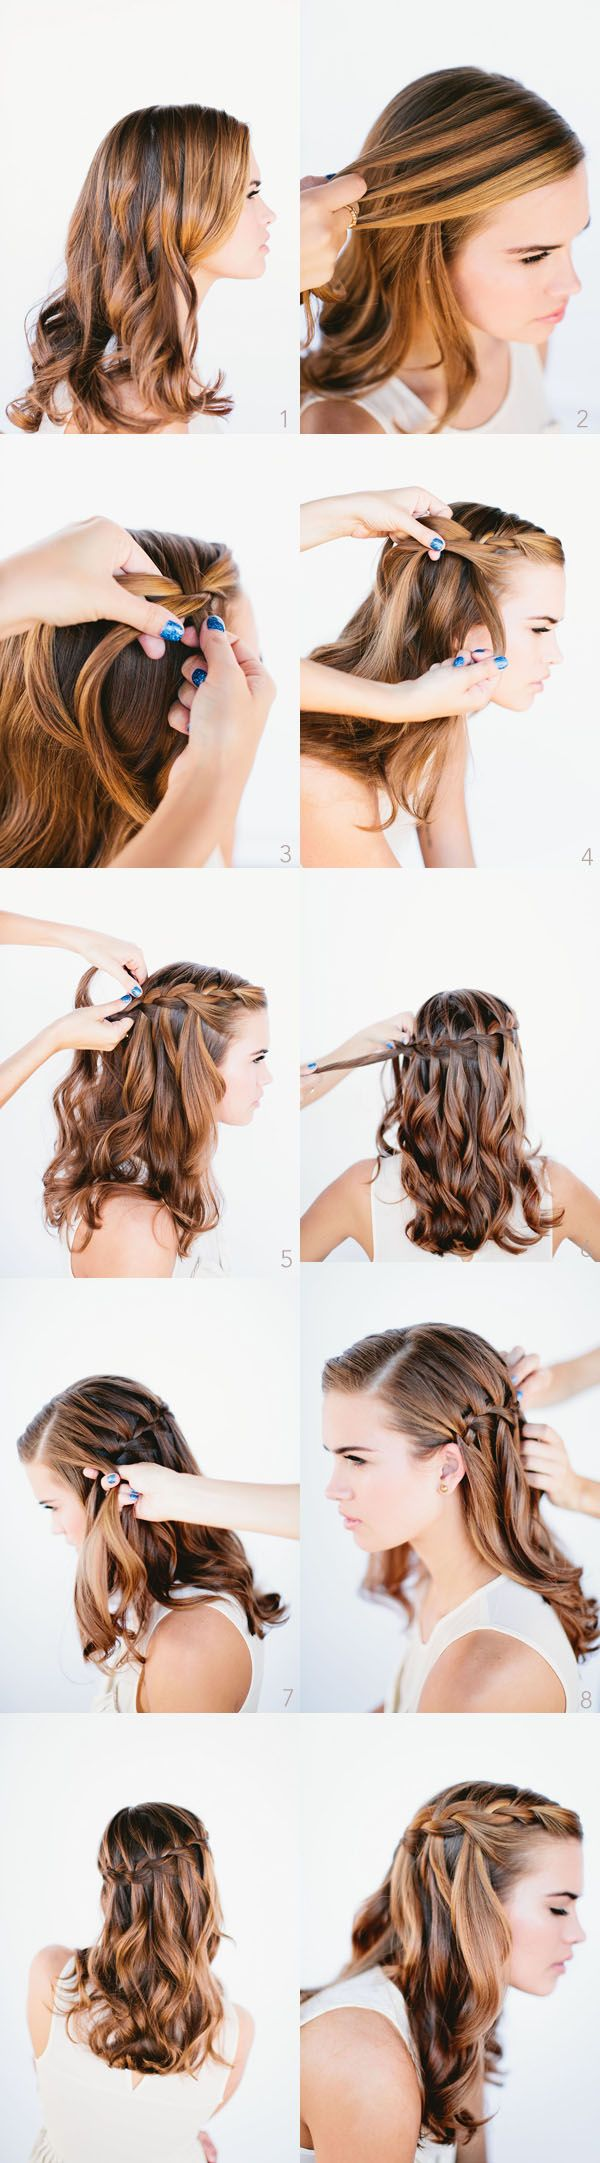 DIY waterfall braid! Get hair products and accessories from Walgreens.com.